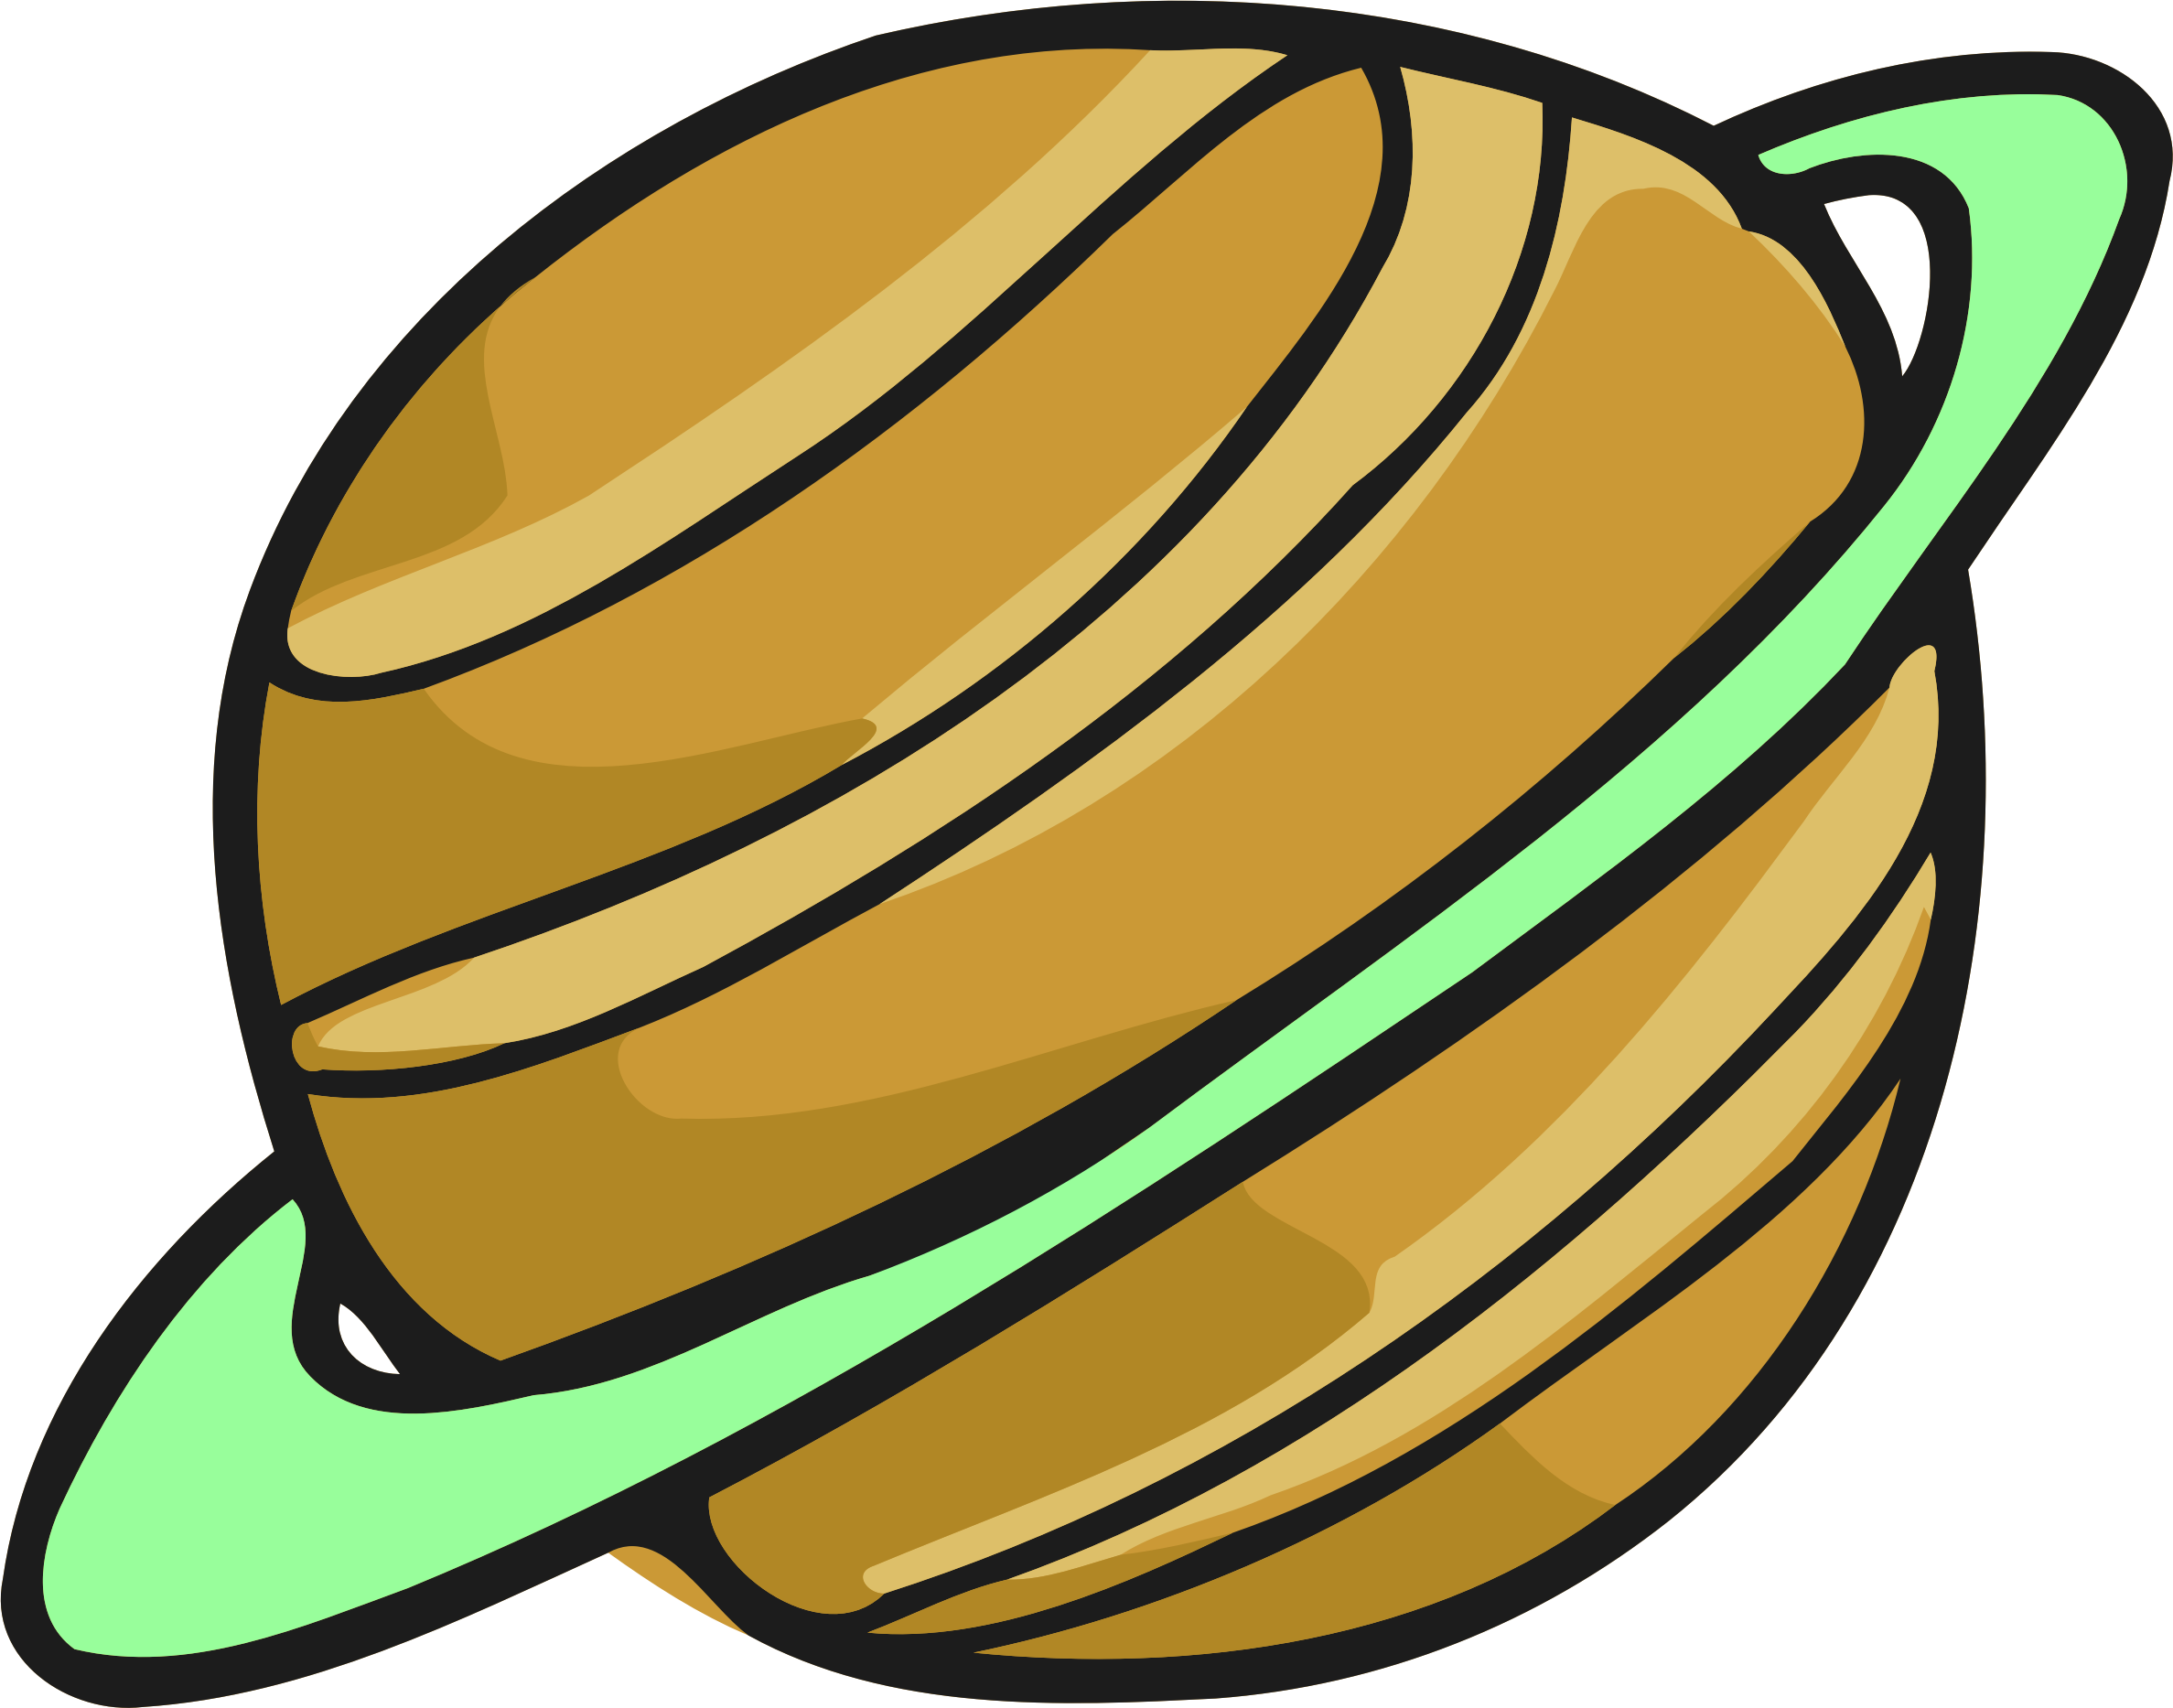 Planet Computer Icons Gas Giant Saturn Encapsulated - Gas Planet Clipart - Png Download (954x750), Png Download